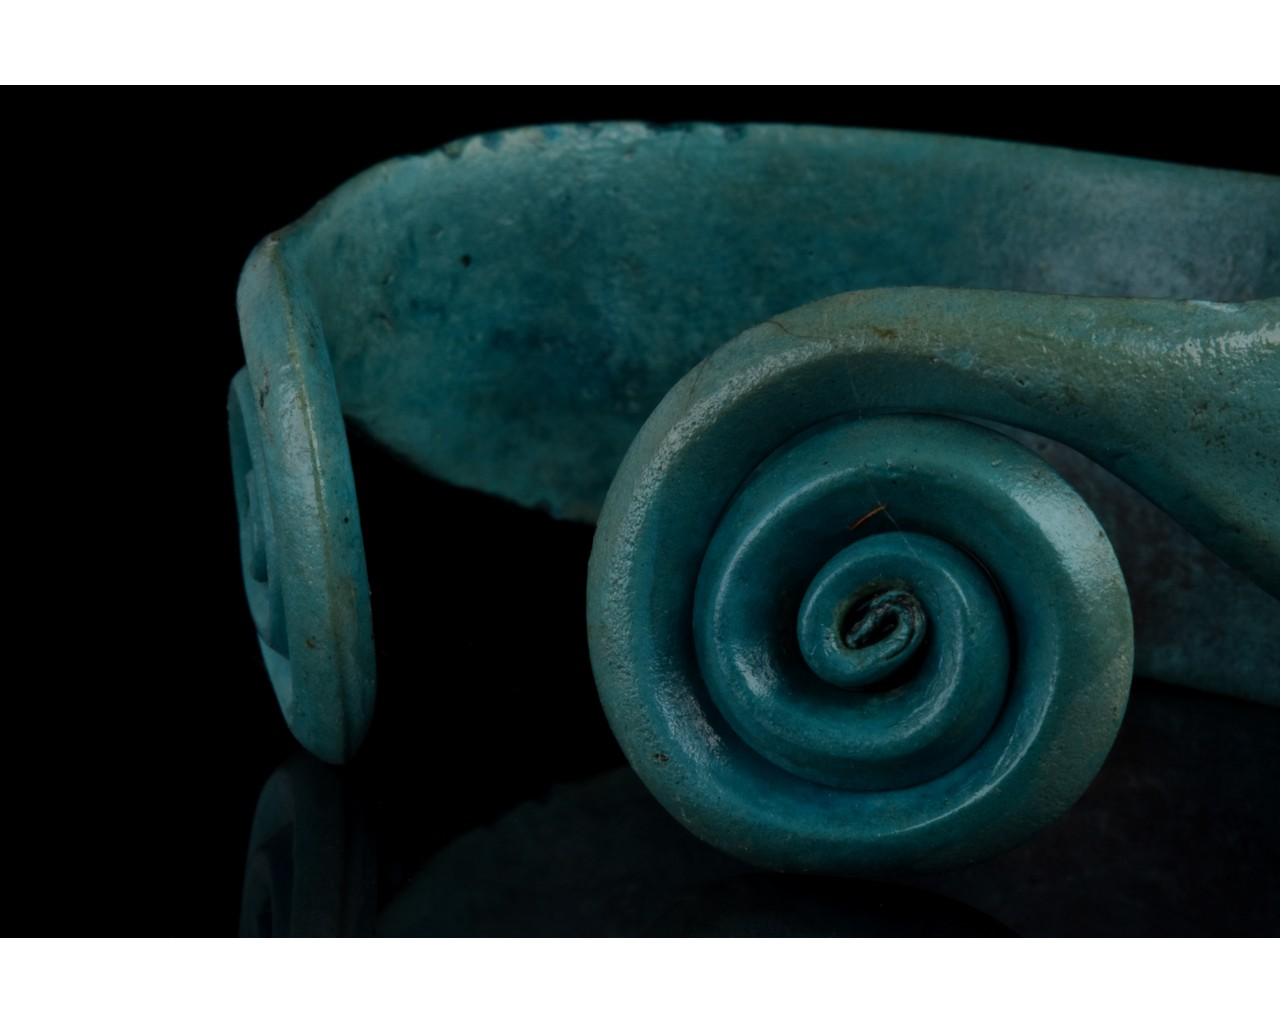 BRONZE AGE COILED BRACELET - Image 7 of 7